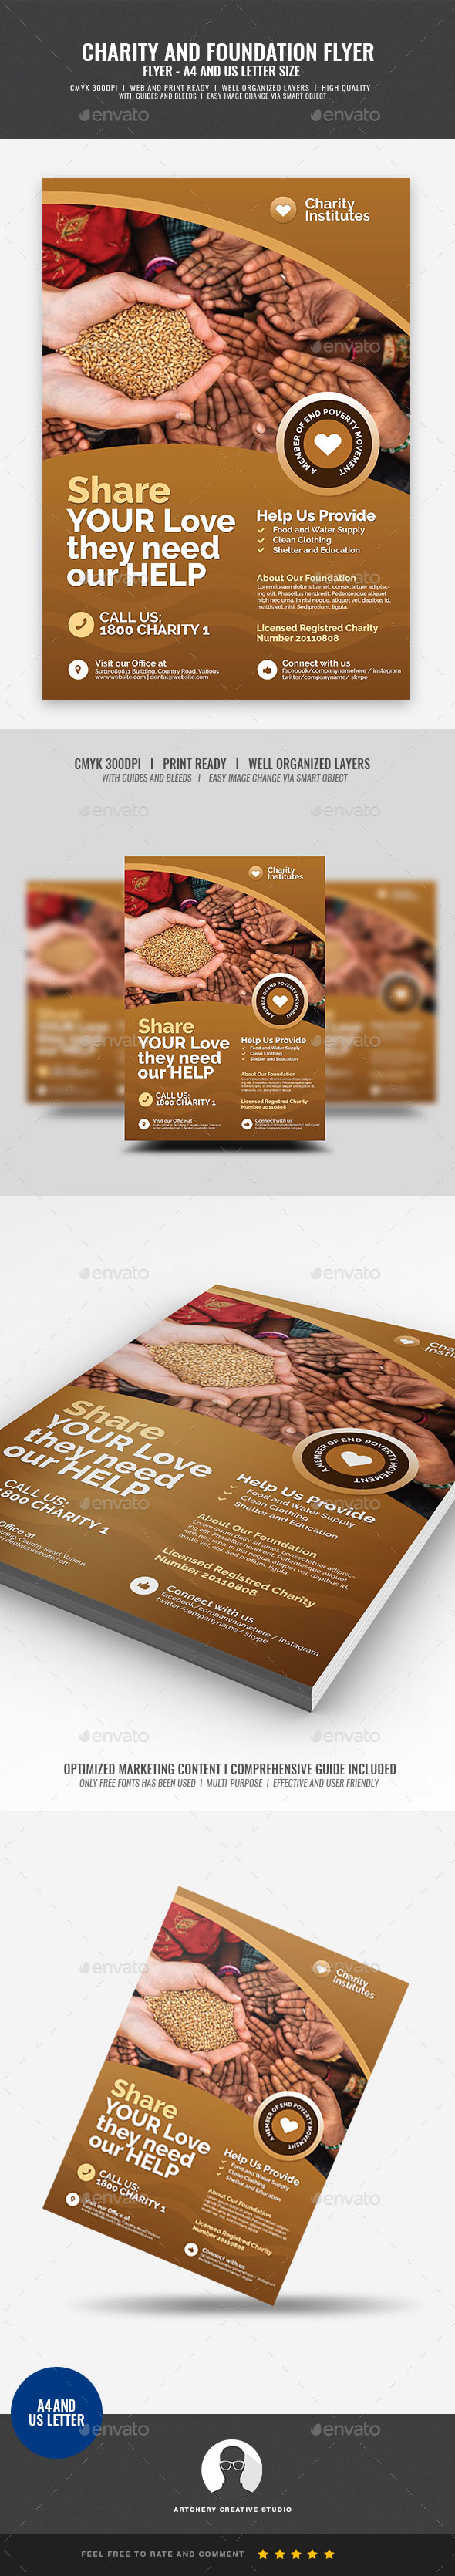 Charity and Foundation Flyer - Corporate Flyers